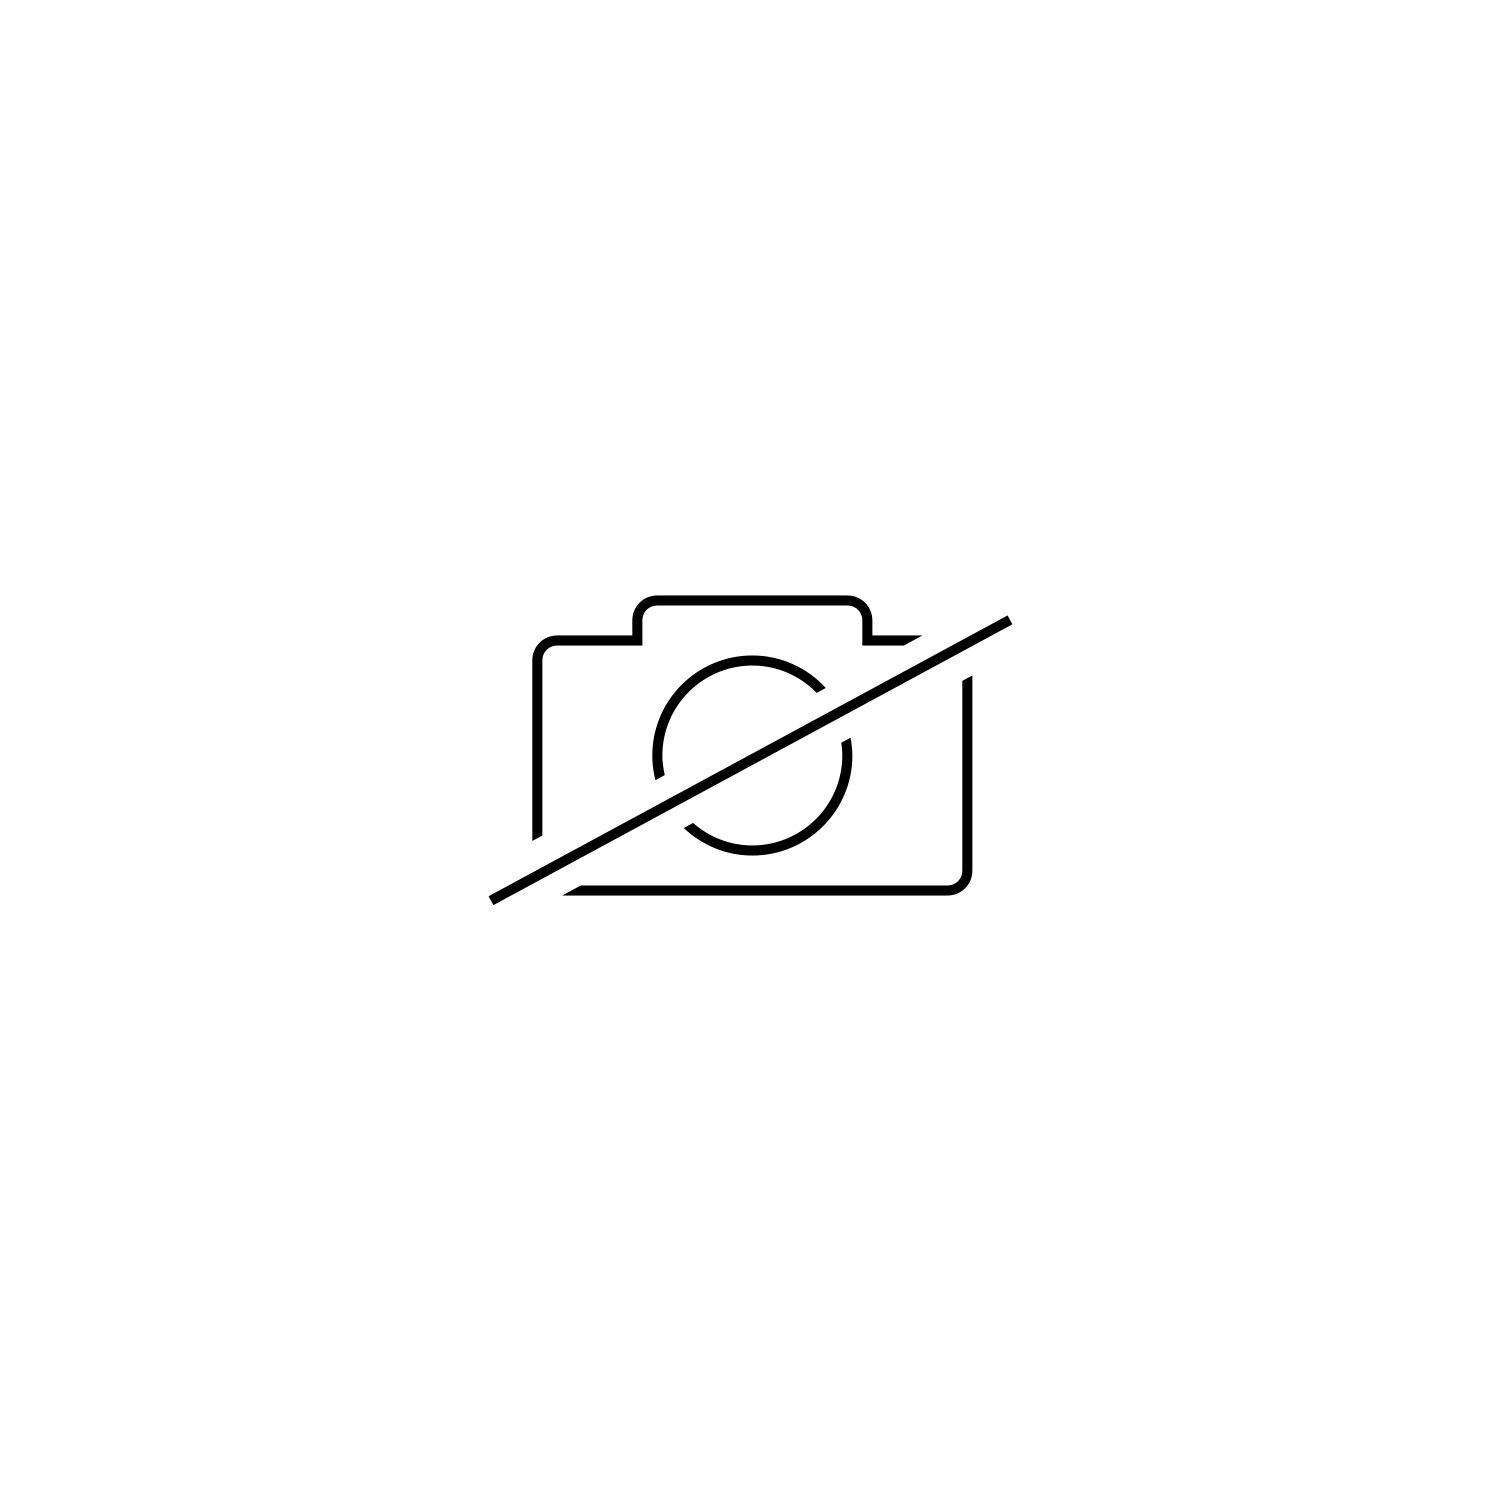 quattro T-Shirt, Mens, Light grey, XL